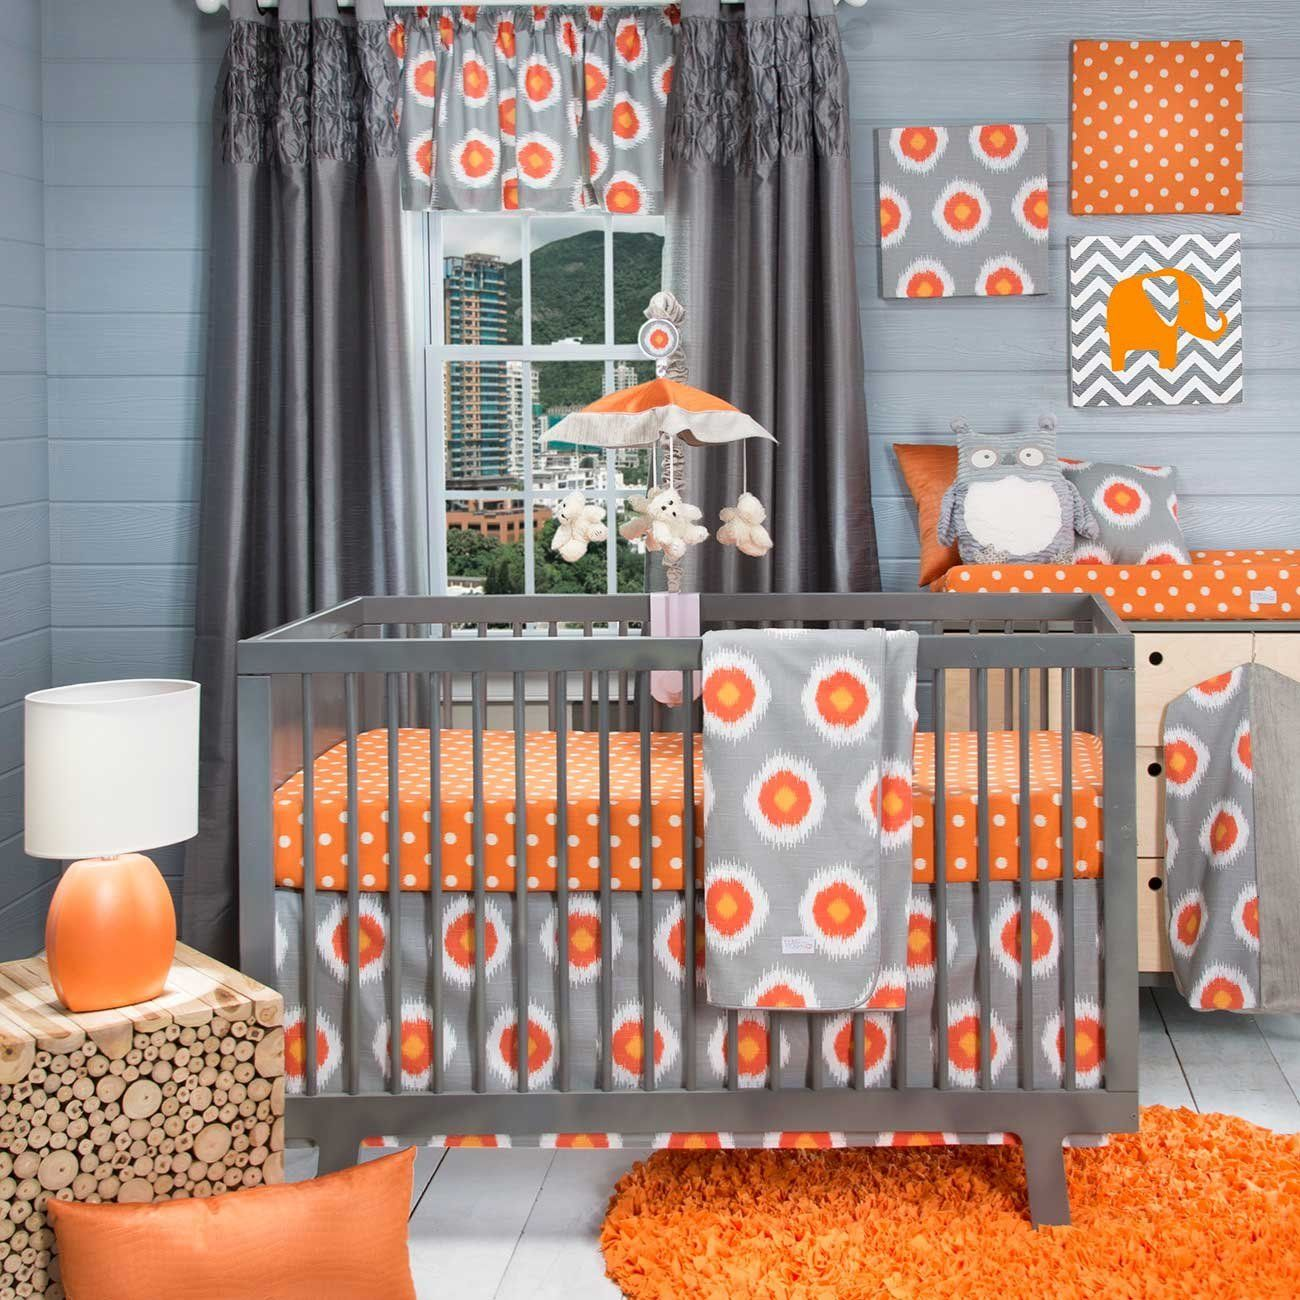 Baby room decorations - Baby Nursery Unique Baby Nursery Room Decoration With Grey And Orange Theme Complete With